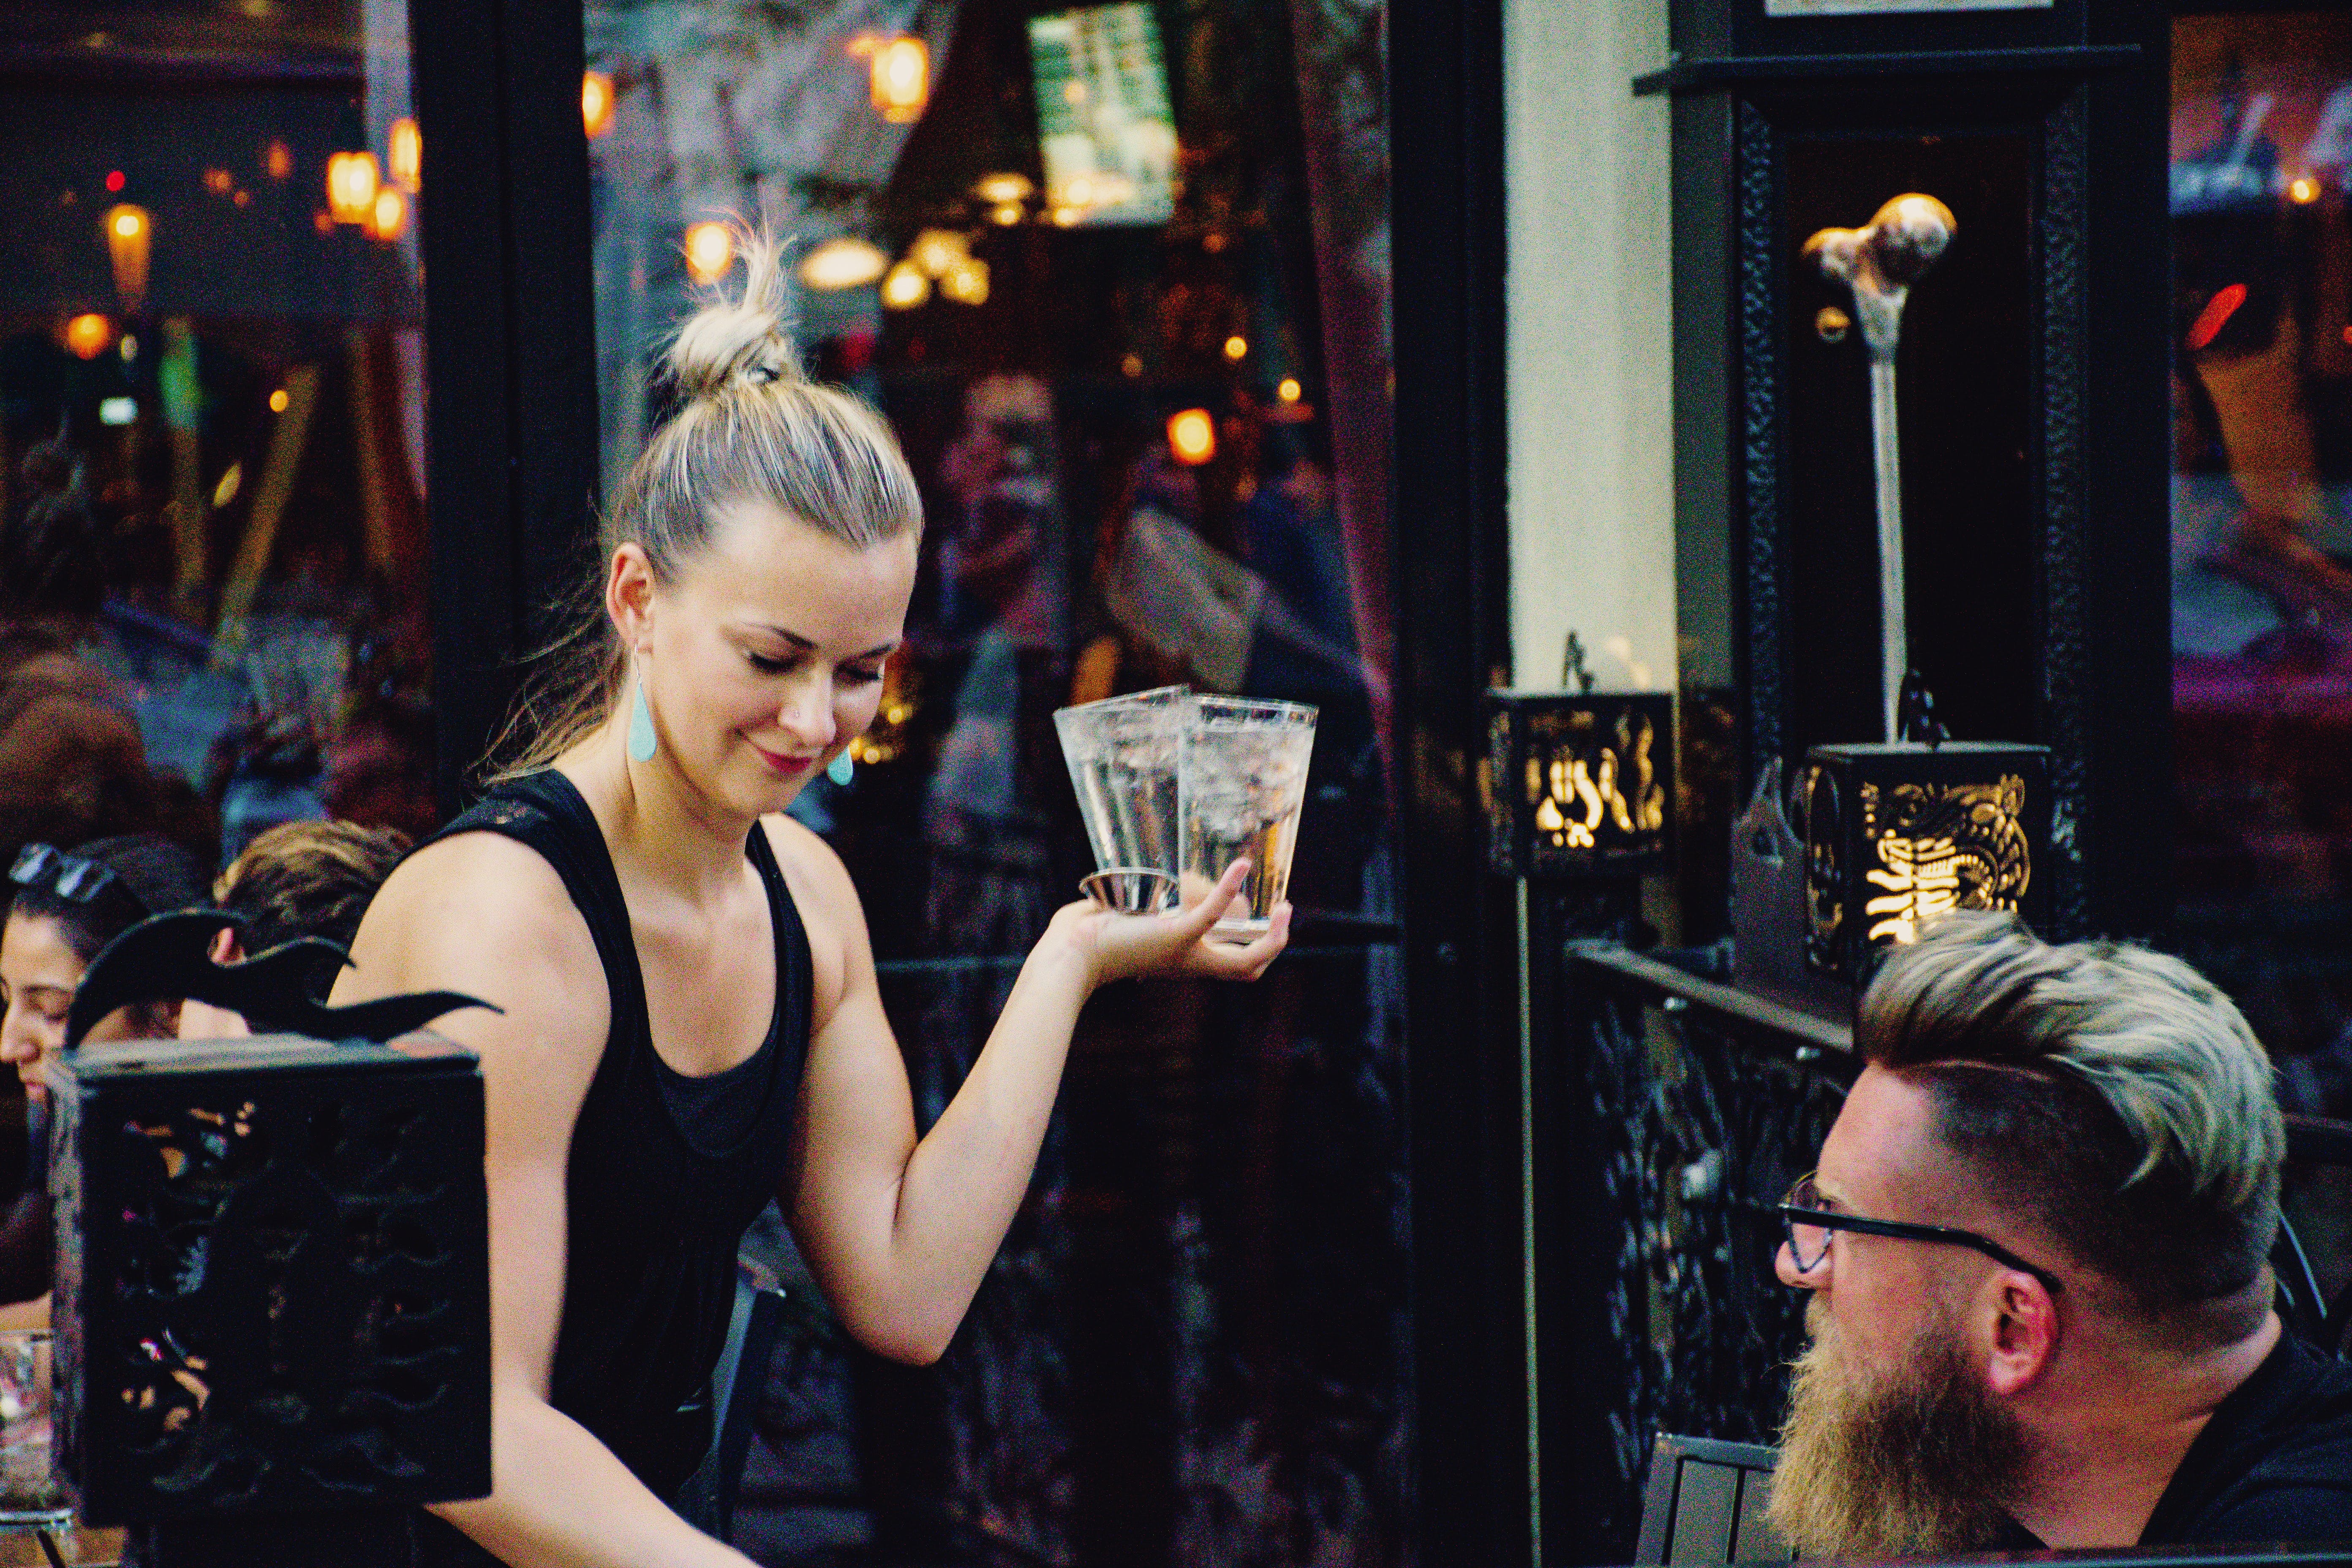 Woman Holding Higball Glass in Front of Man